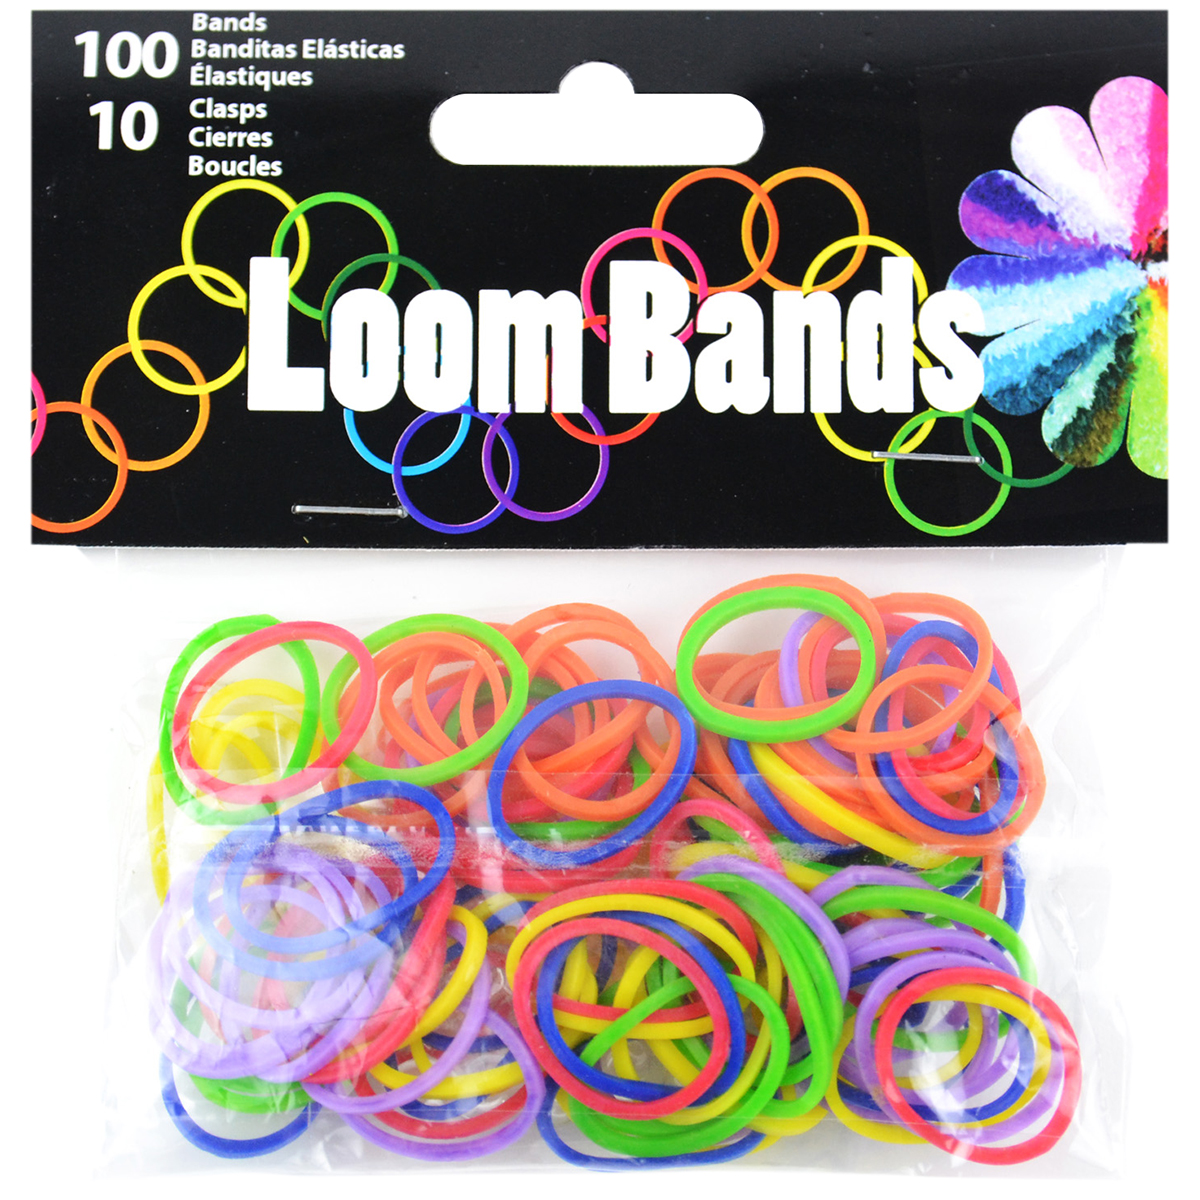 Loom Bands with Clasps, 100 Bands and 10 Clasps, Primary Assortment